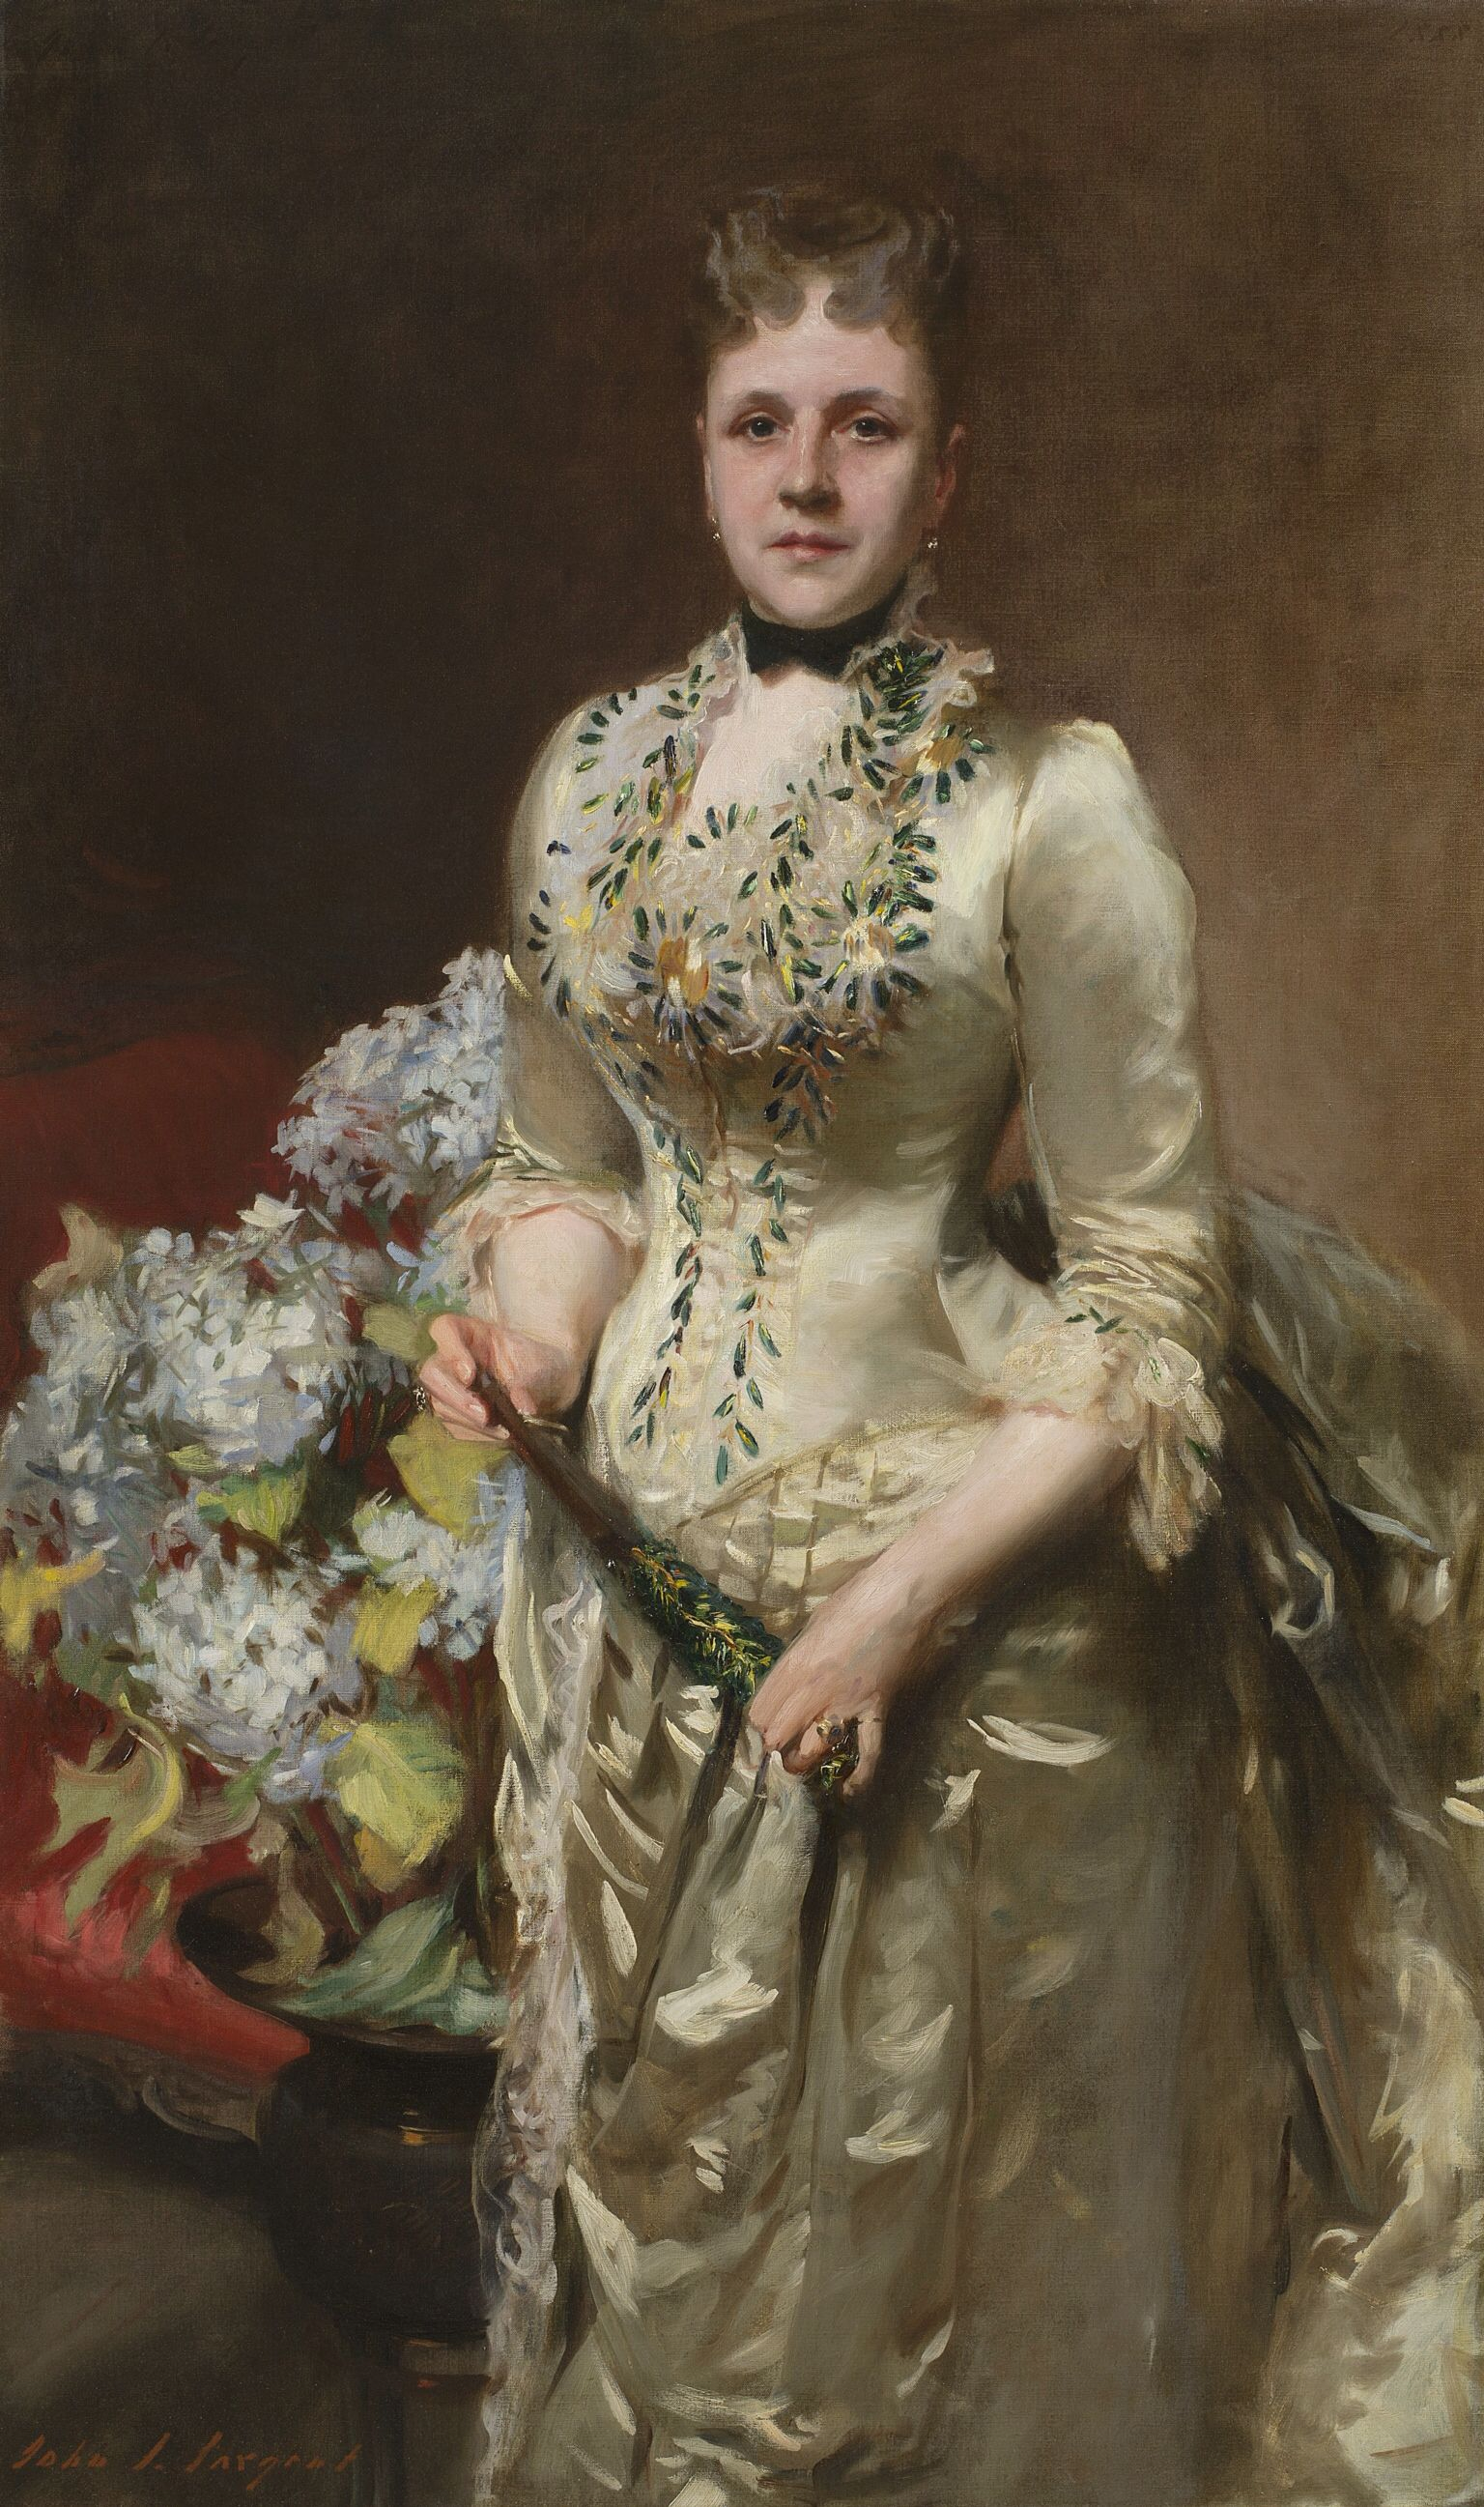 John Singer Sargent (1856–1925), Mrs. Jacob Wendel,1888. Oil on canvas. New-York Historical Society, Gift of the Roger and Susan Hertog Charitable Fund and Jan and Warren Adelson